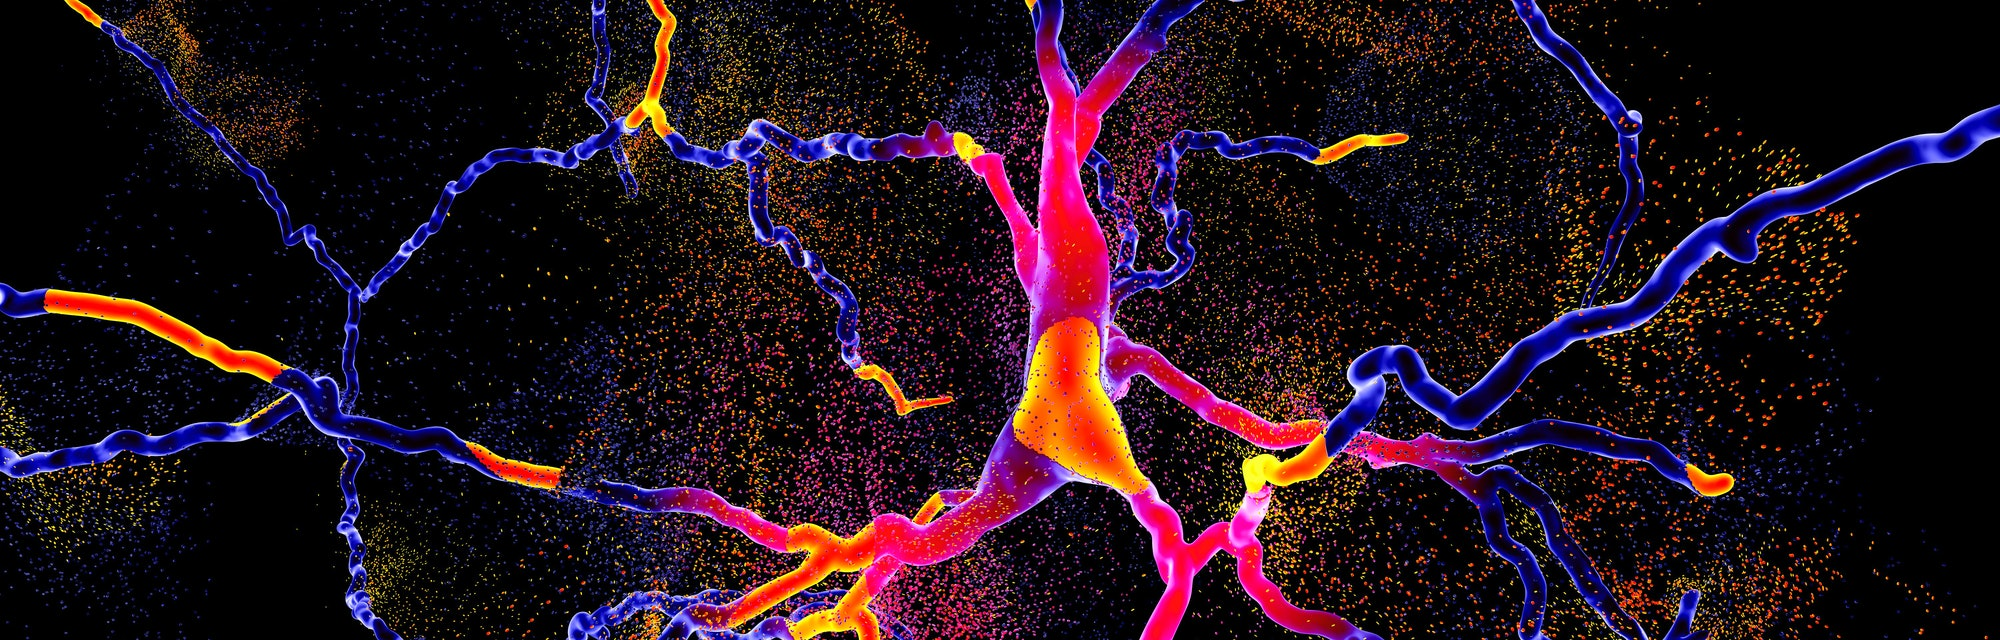 neuron degeneration in parkinson's disease